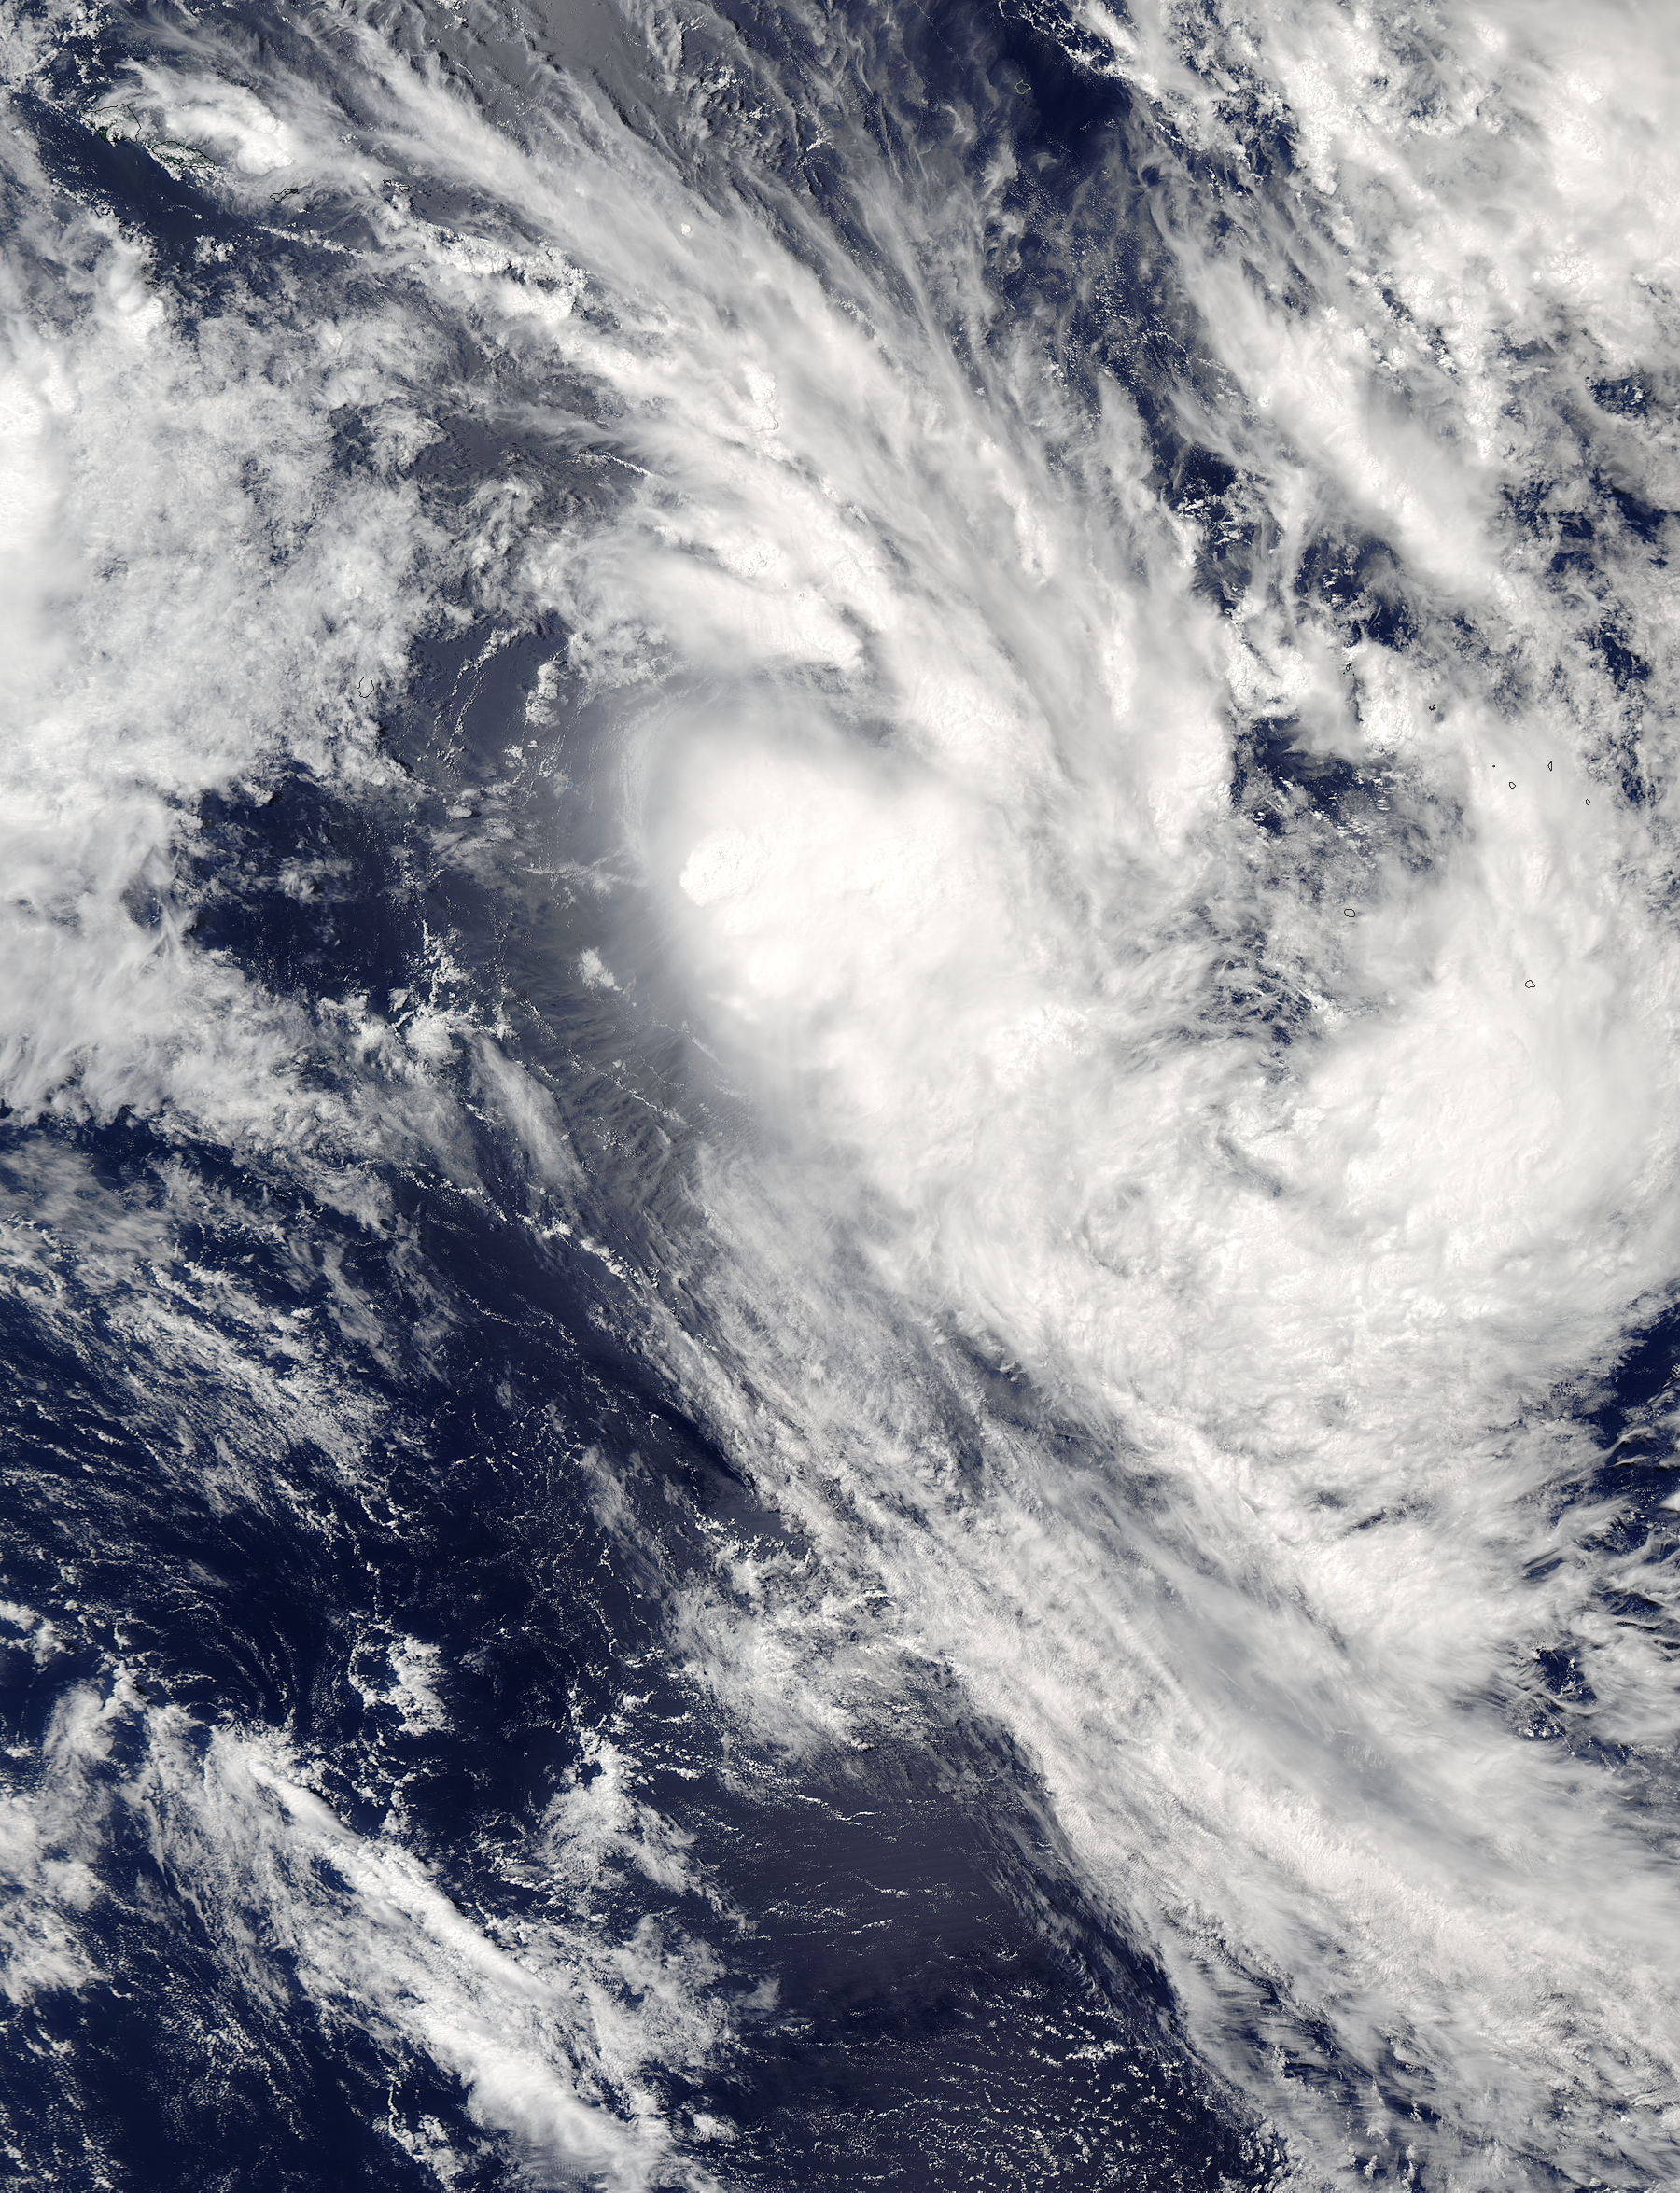 HS3 Mission Identifies Area of Strong Winds, Rain in Hurricane ...